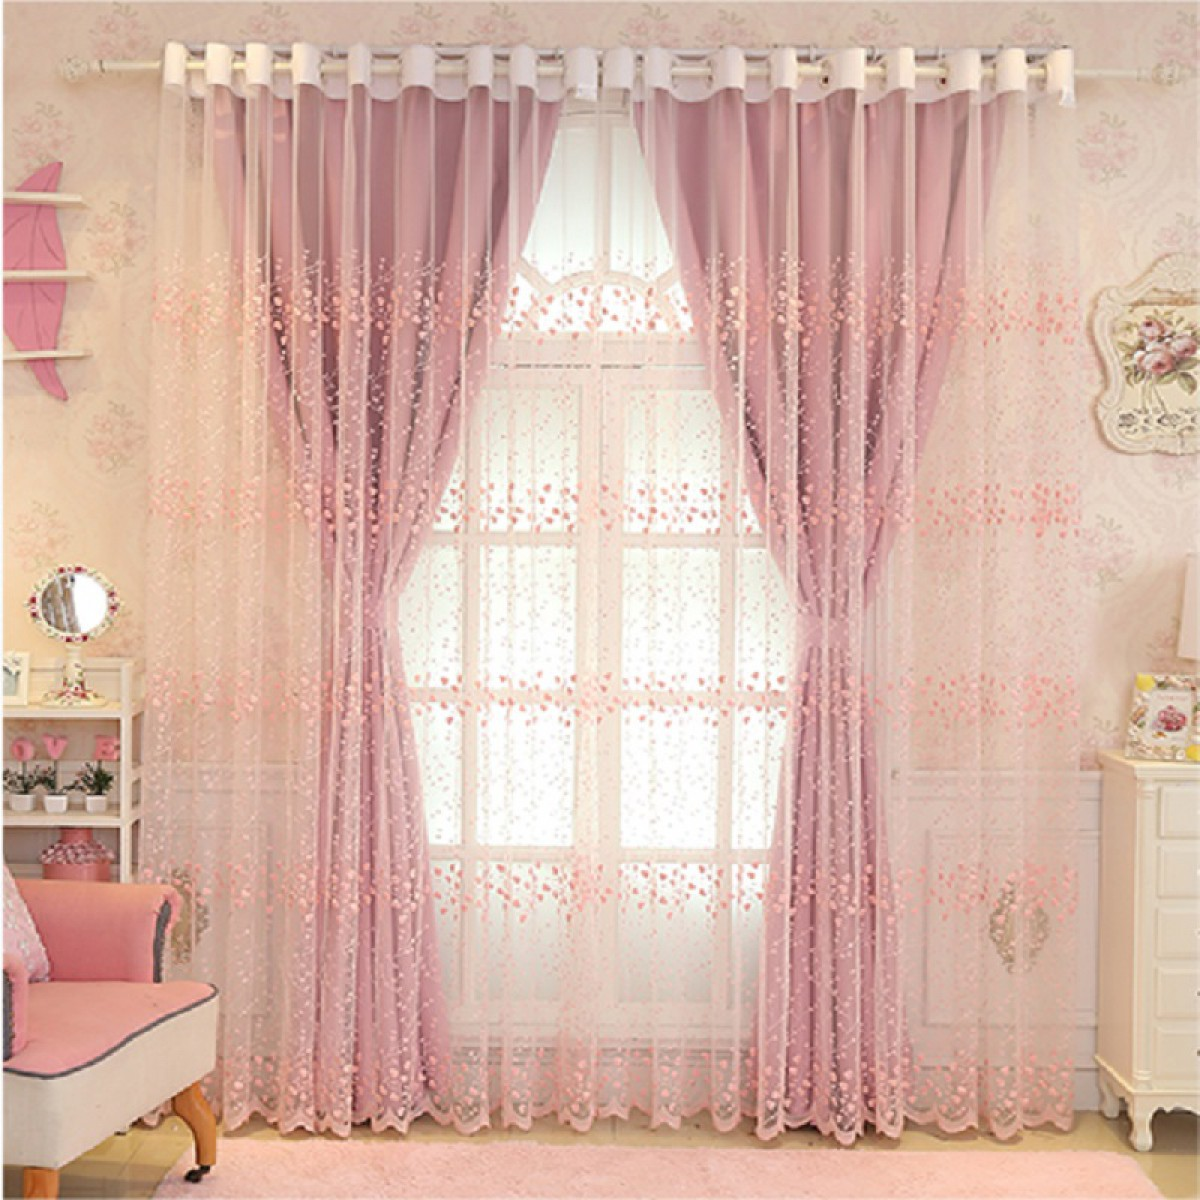 Room Darkening Curtains Mix And Match Blue Gray Baby Pink